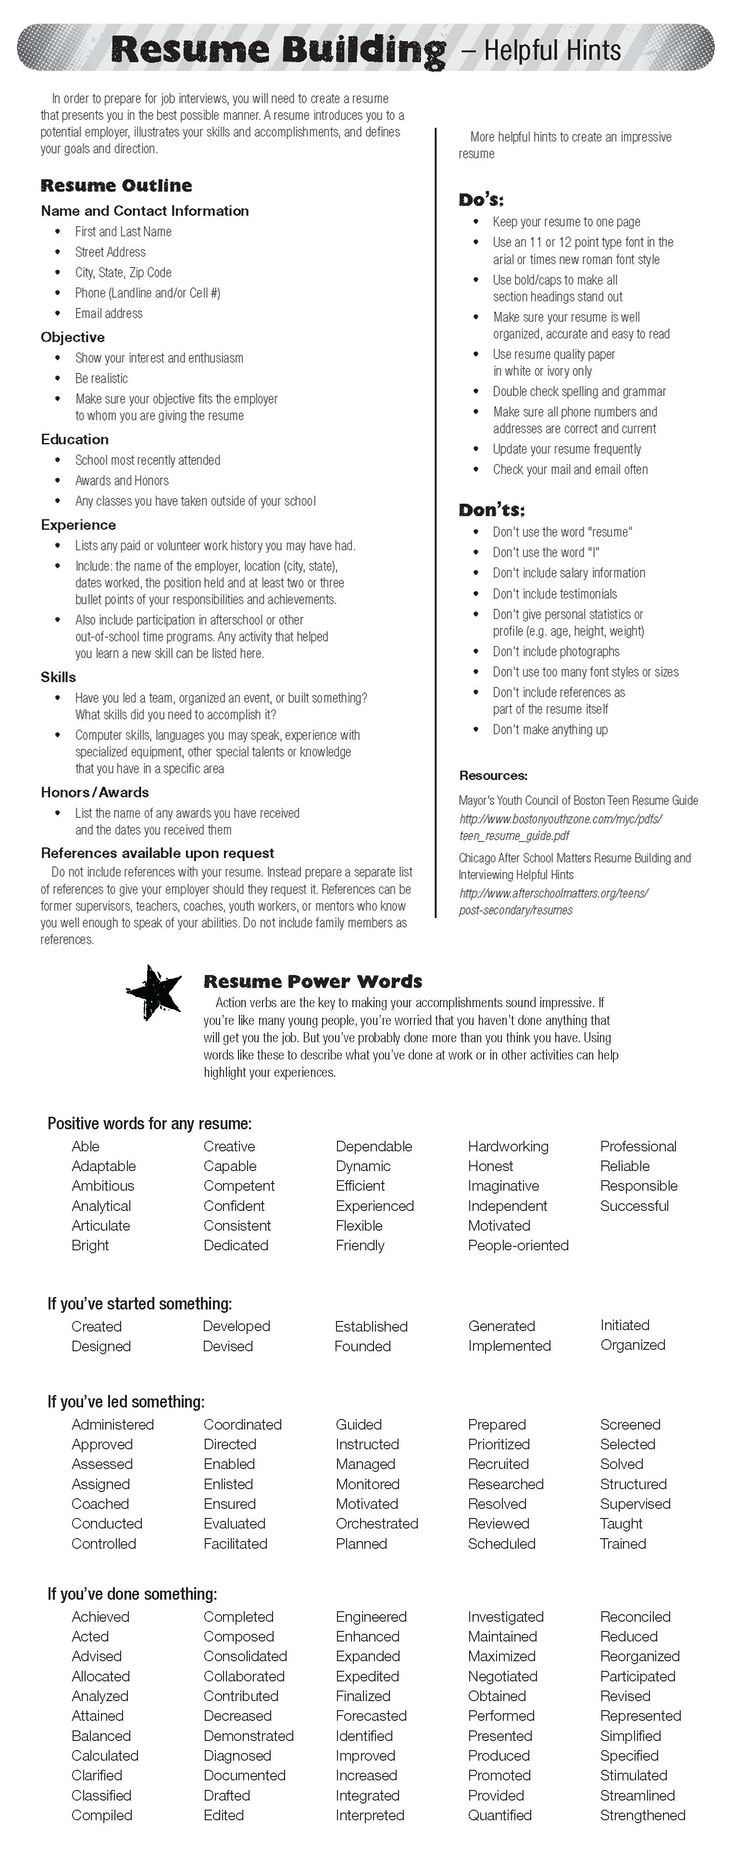 Opposenewapstandardsus  Marvellous  Ideas About Resume On Pinterest  Cv Format Resume Cv And  With Licious  Ideas About Resume On Pinterest  Cv Format Resume Cv And Resume Templates With Breathtaking Plain Text Resume Also Nursing Resume Samples In Addition Resume Customer Service And Business Owner Resume As Well As System Administrator Resume Additionally Resumes For Teens From Pinterestcom With Opposenewapstandardsus  Licious  Ideas About Resume On Pinterest  Cv Format Resume Cv And  With Breathtaking  Ideas About Resume On Pinterest  Cv Format Resume Cv And Resume Templates And Marvellous Plain Text Resume Also Nursing Resume Samples In Addition Resume Customer Service From Pinterestcom